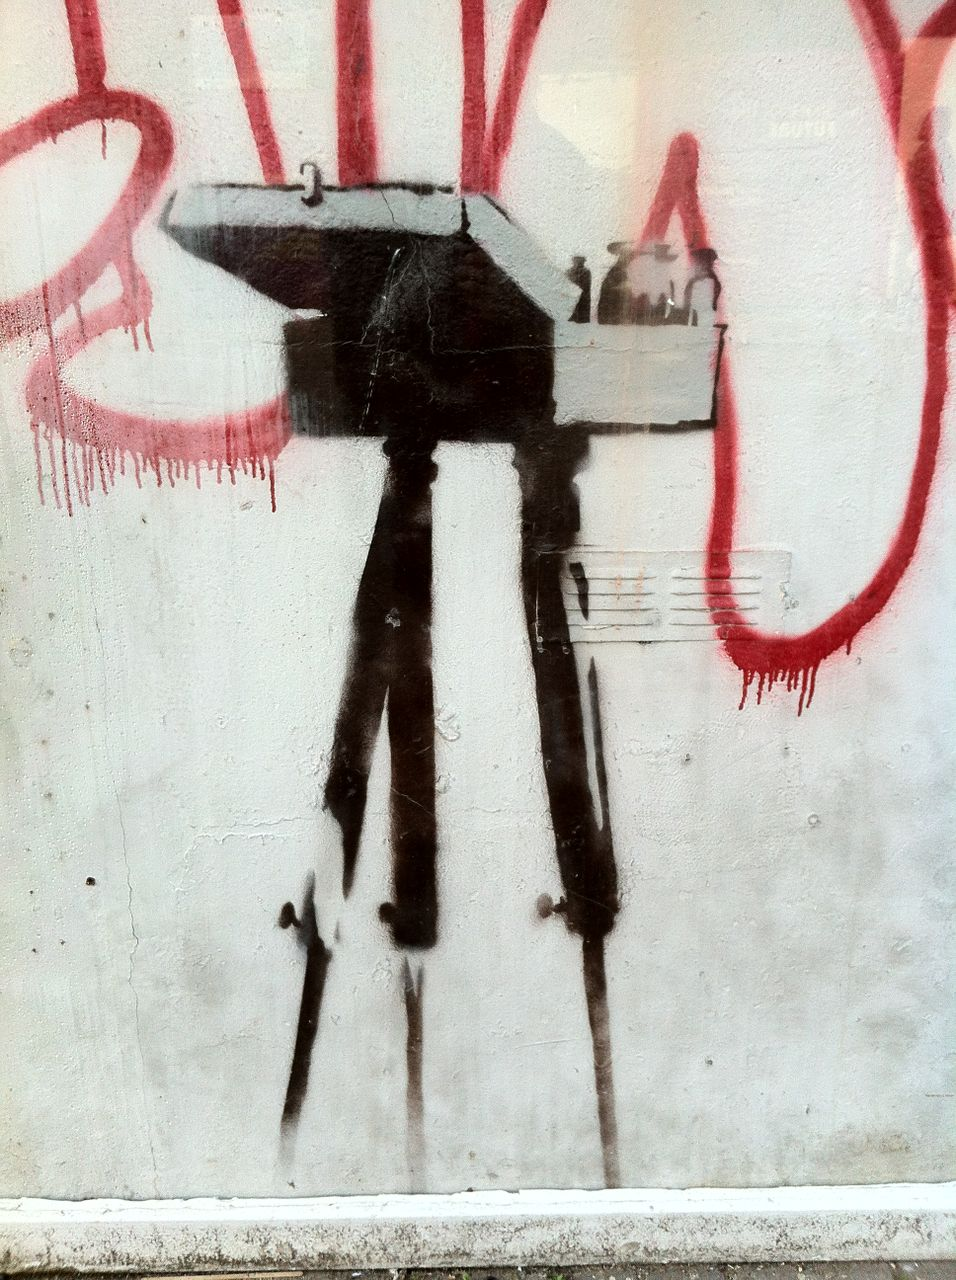 banksy-graffiti-painter-detail2